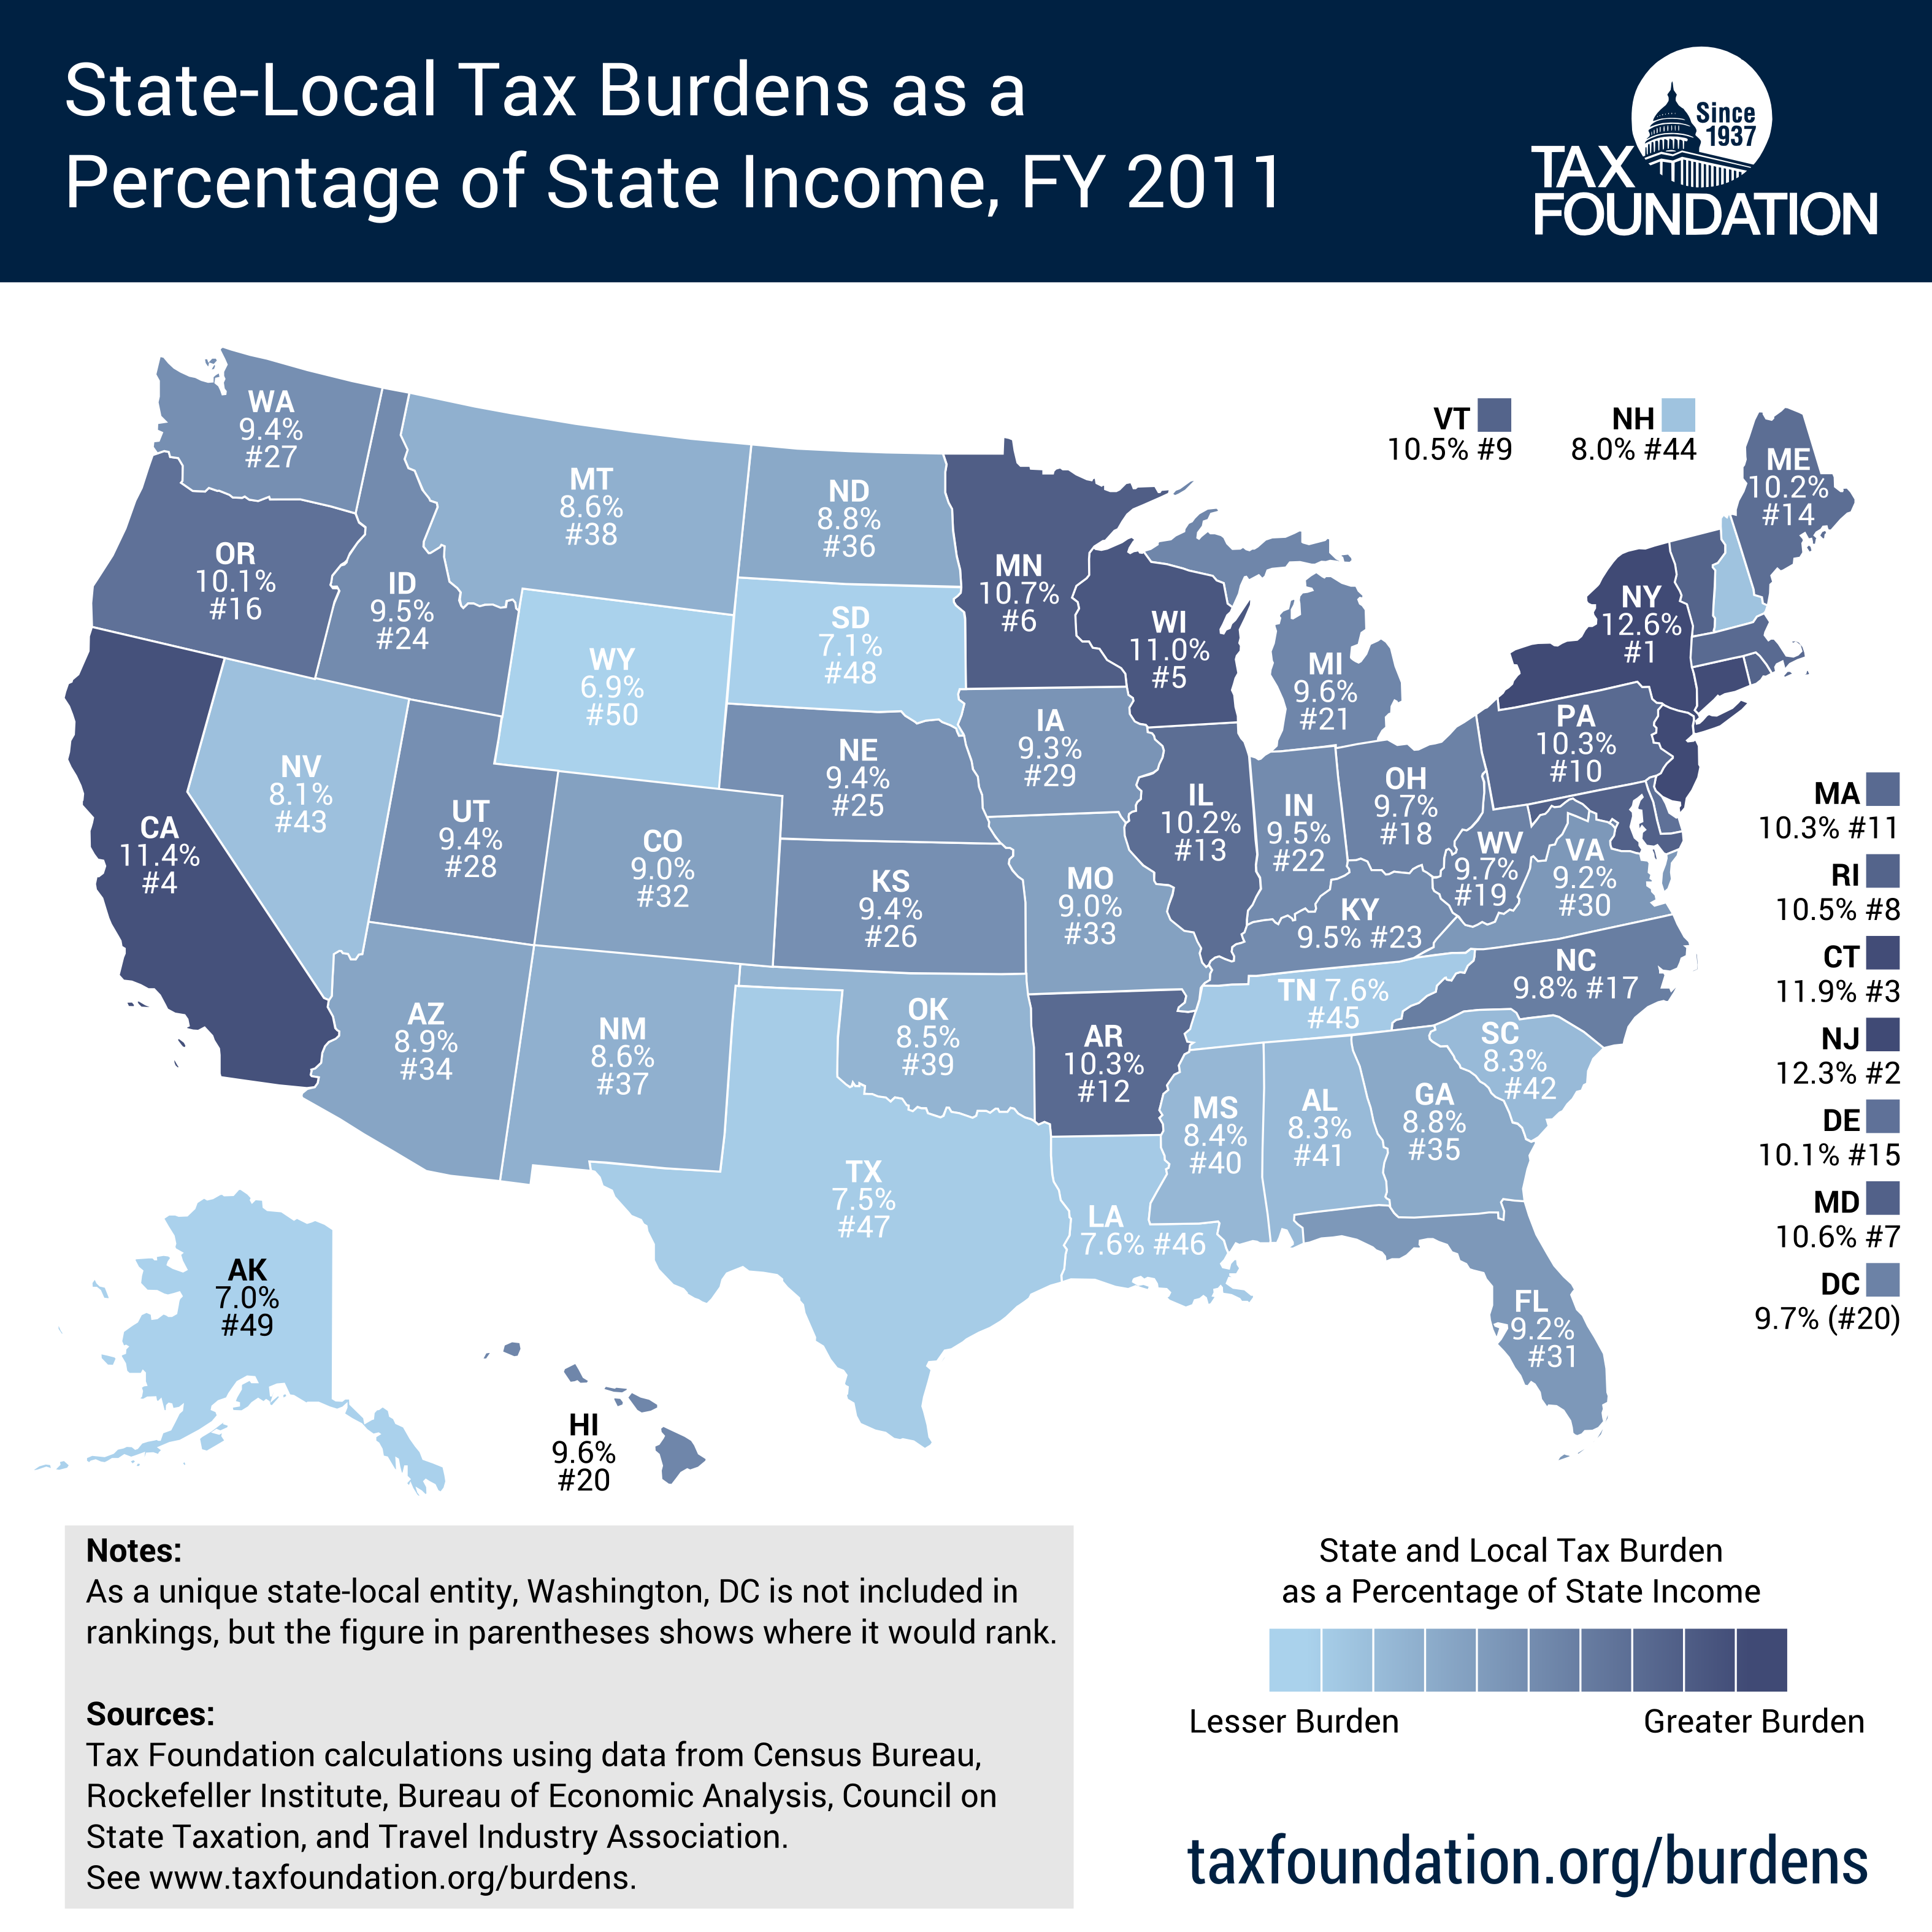 IMAGE(http://taxfoundation.org/sites/taxfoundation.org/files/docs/BURDENS%20MAP.png)